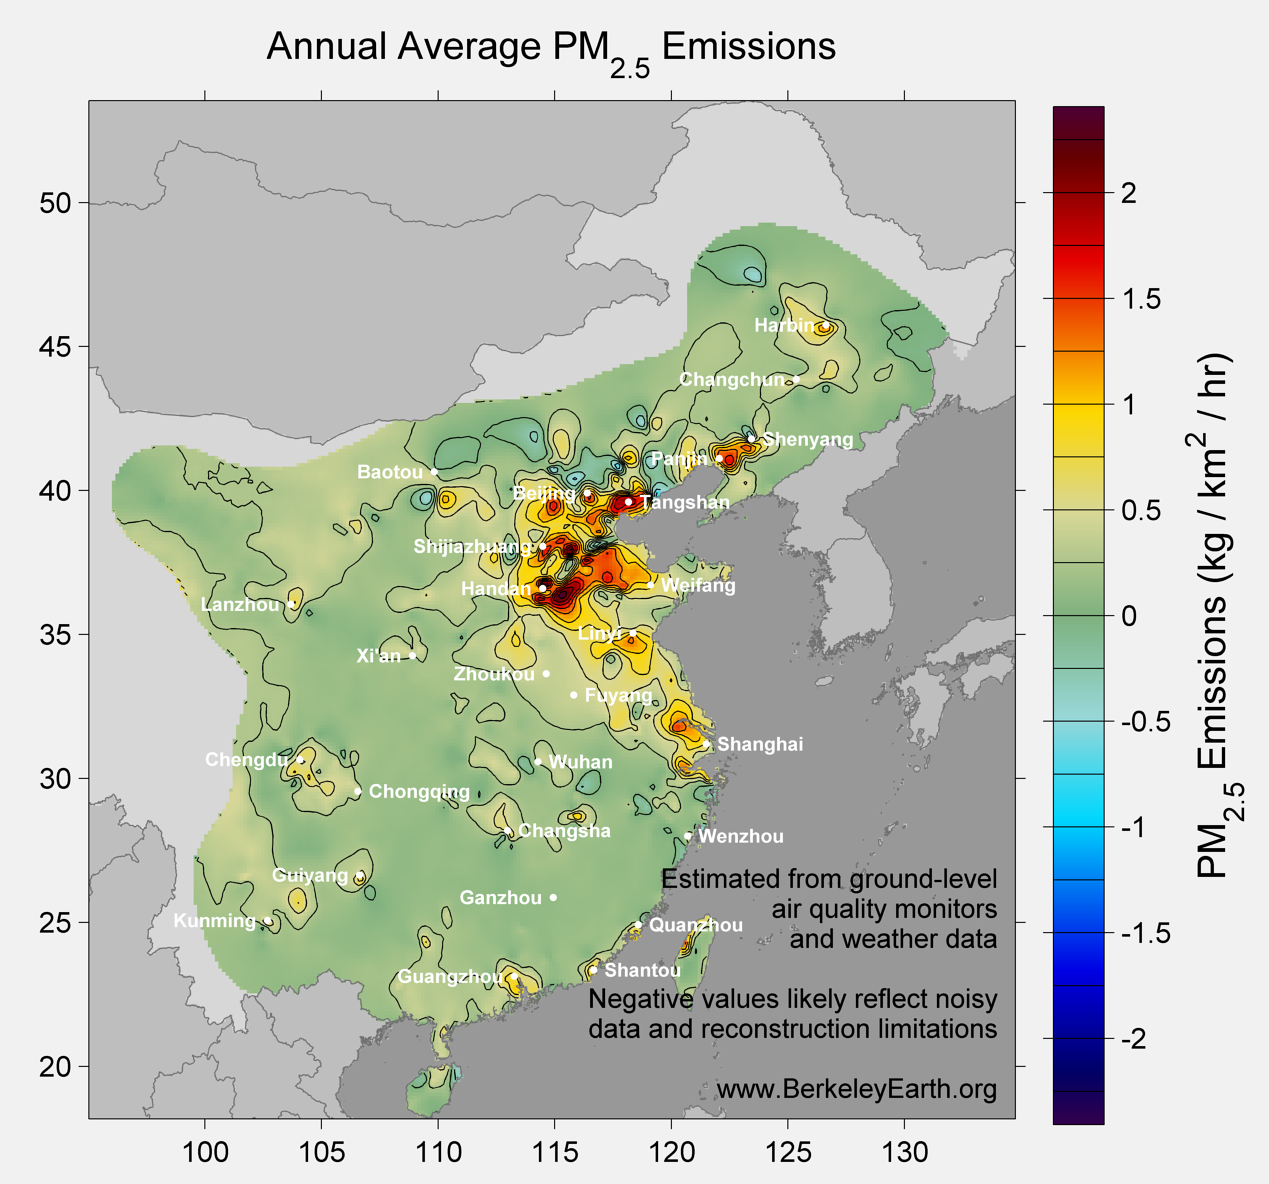 China_pm25_Average_Emission_Map